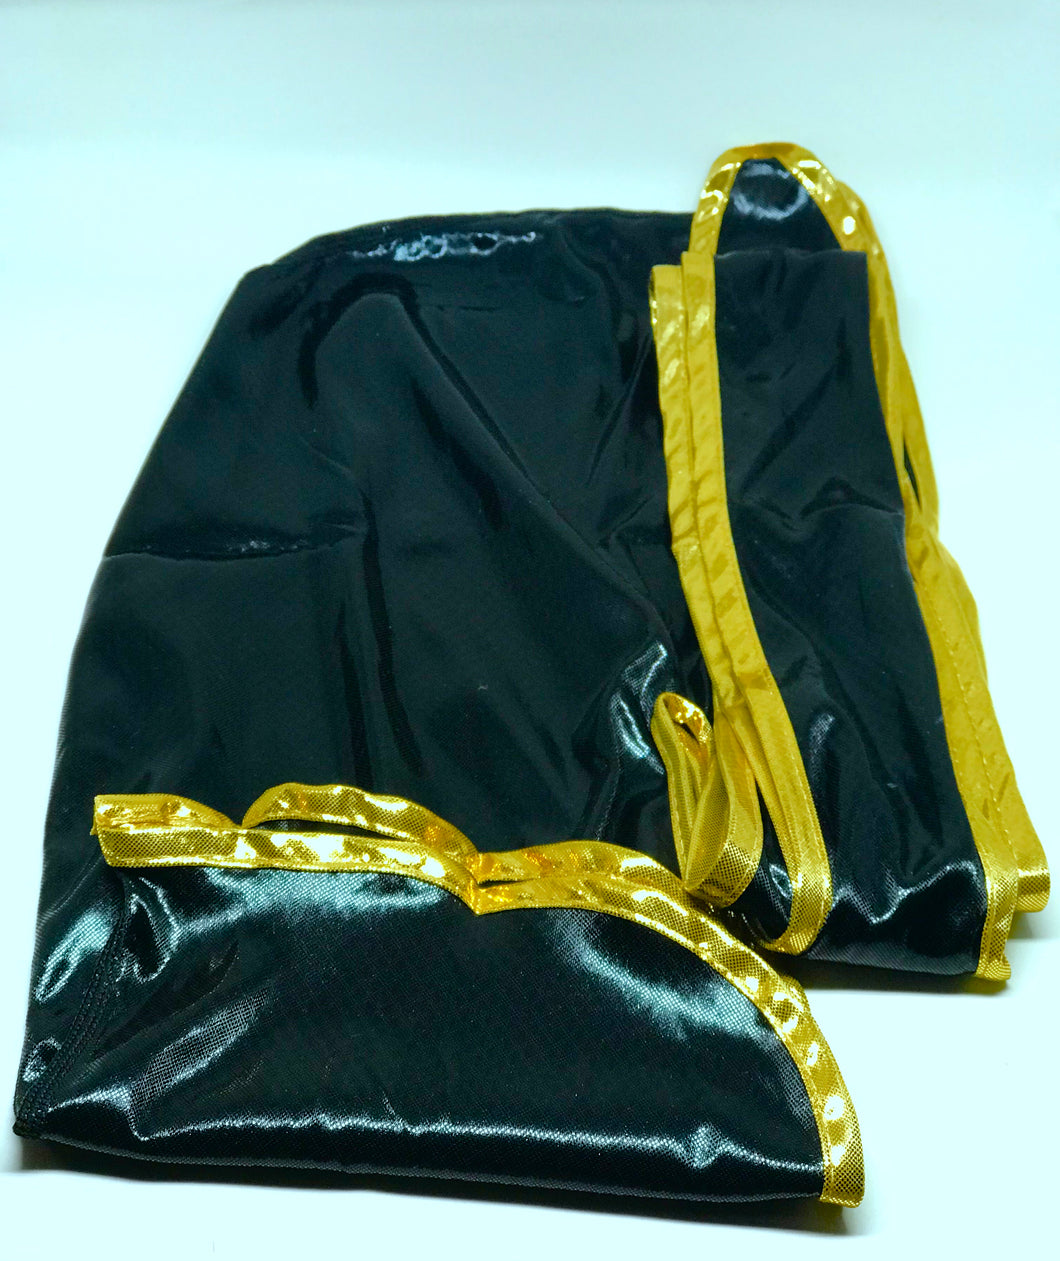 Rimix *PATENT PENDING* Silky Exclusive Platinum Edition Durag (4k Limited Edition) - Black/Gold (Black Panther)